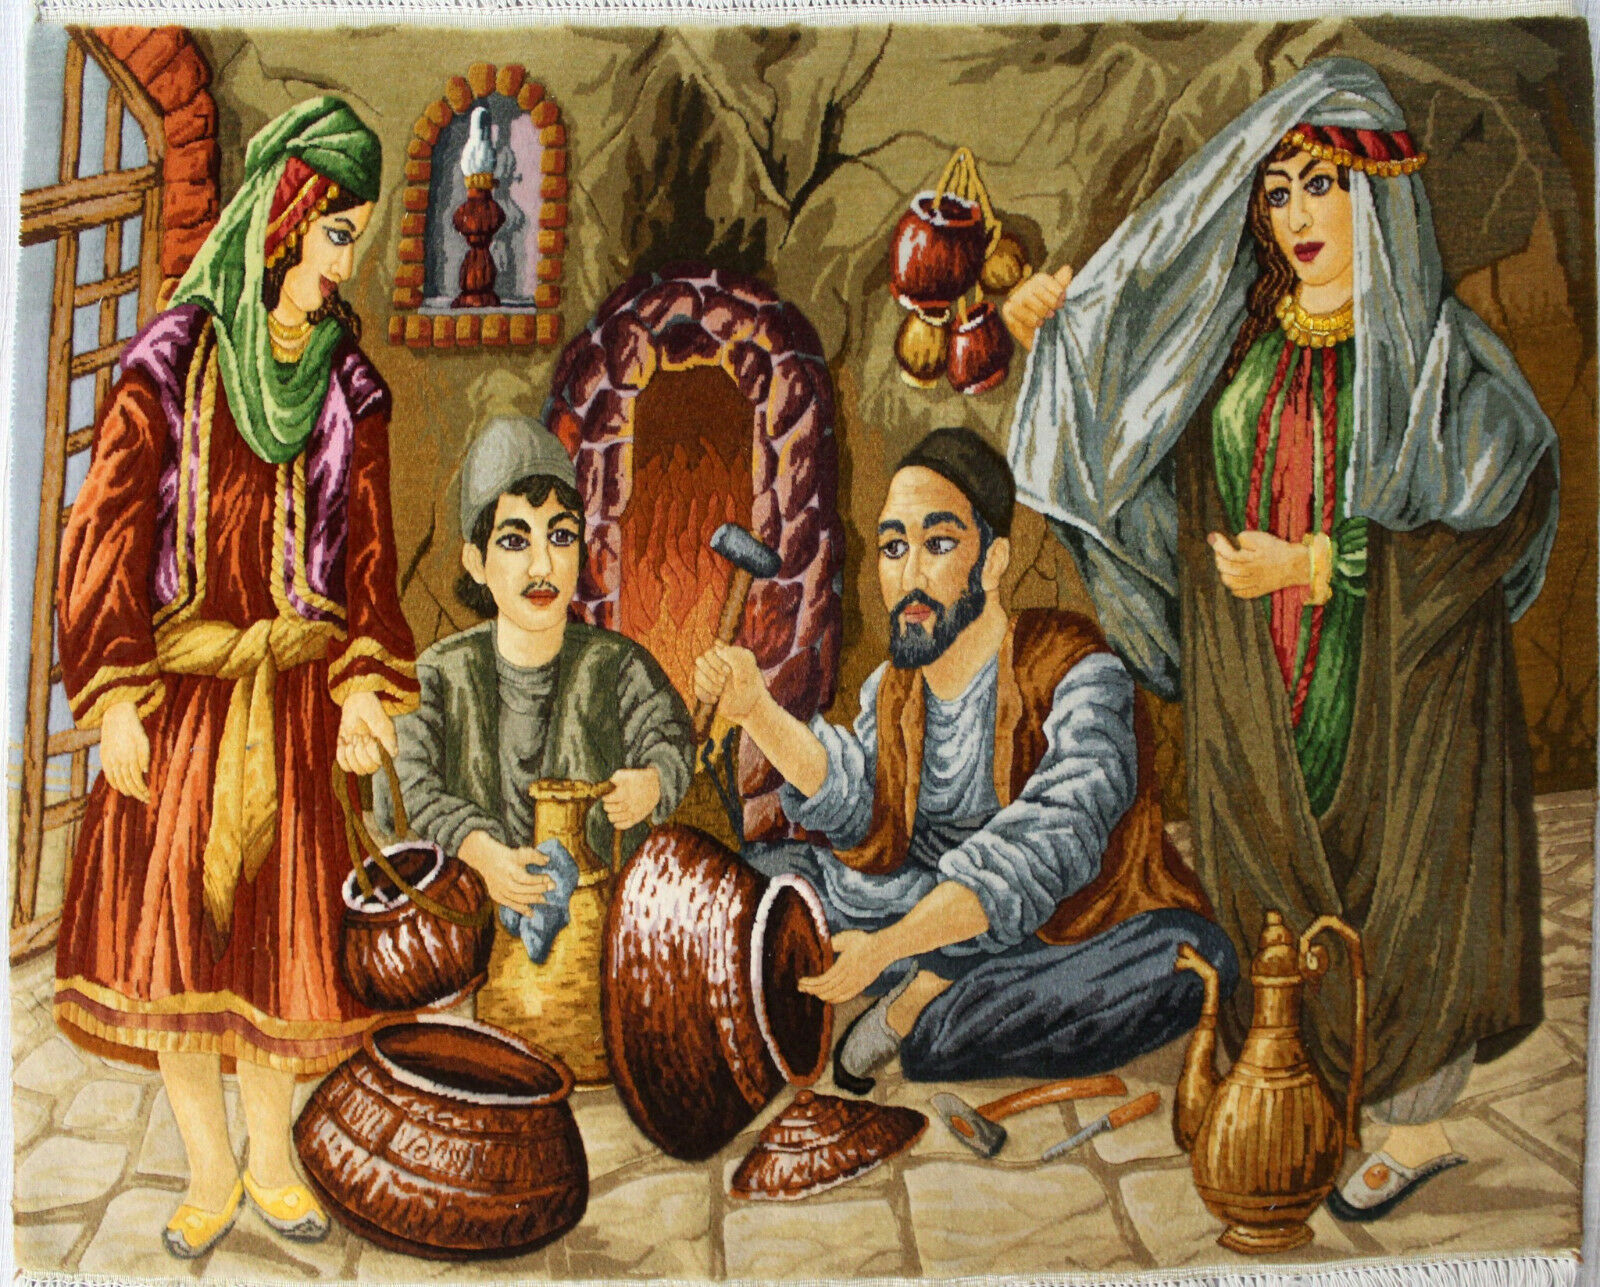 3'W x 2'5H Handmade Wool and Silk TRADITIONAL BAZAR Persian Tableau Rug Tapestry Wall Hanging 12980866 (1)